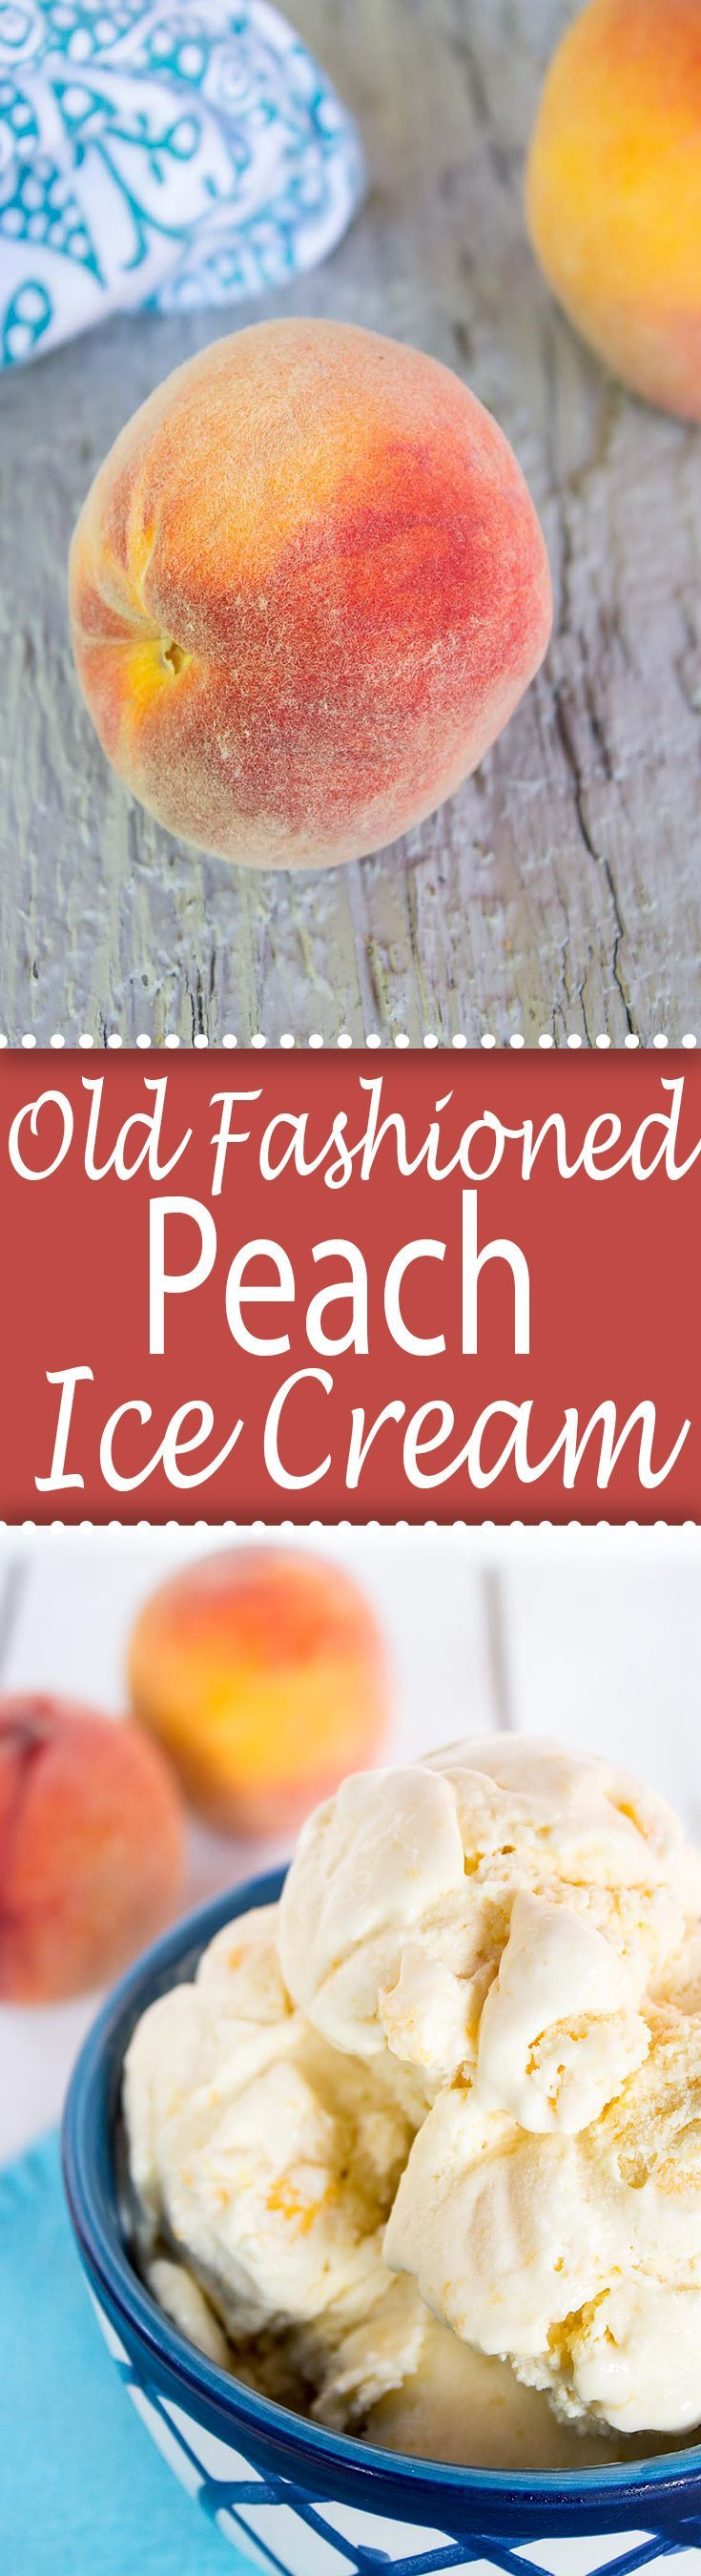 Old Fashioned Peach Ice Cream http://beyondthechickencoop.com